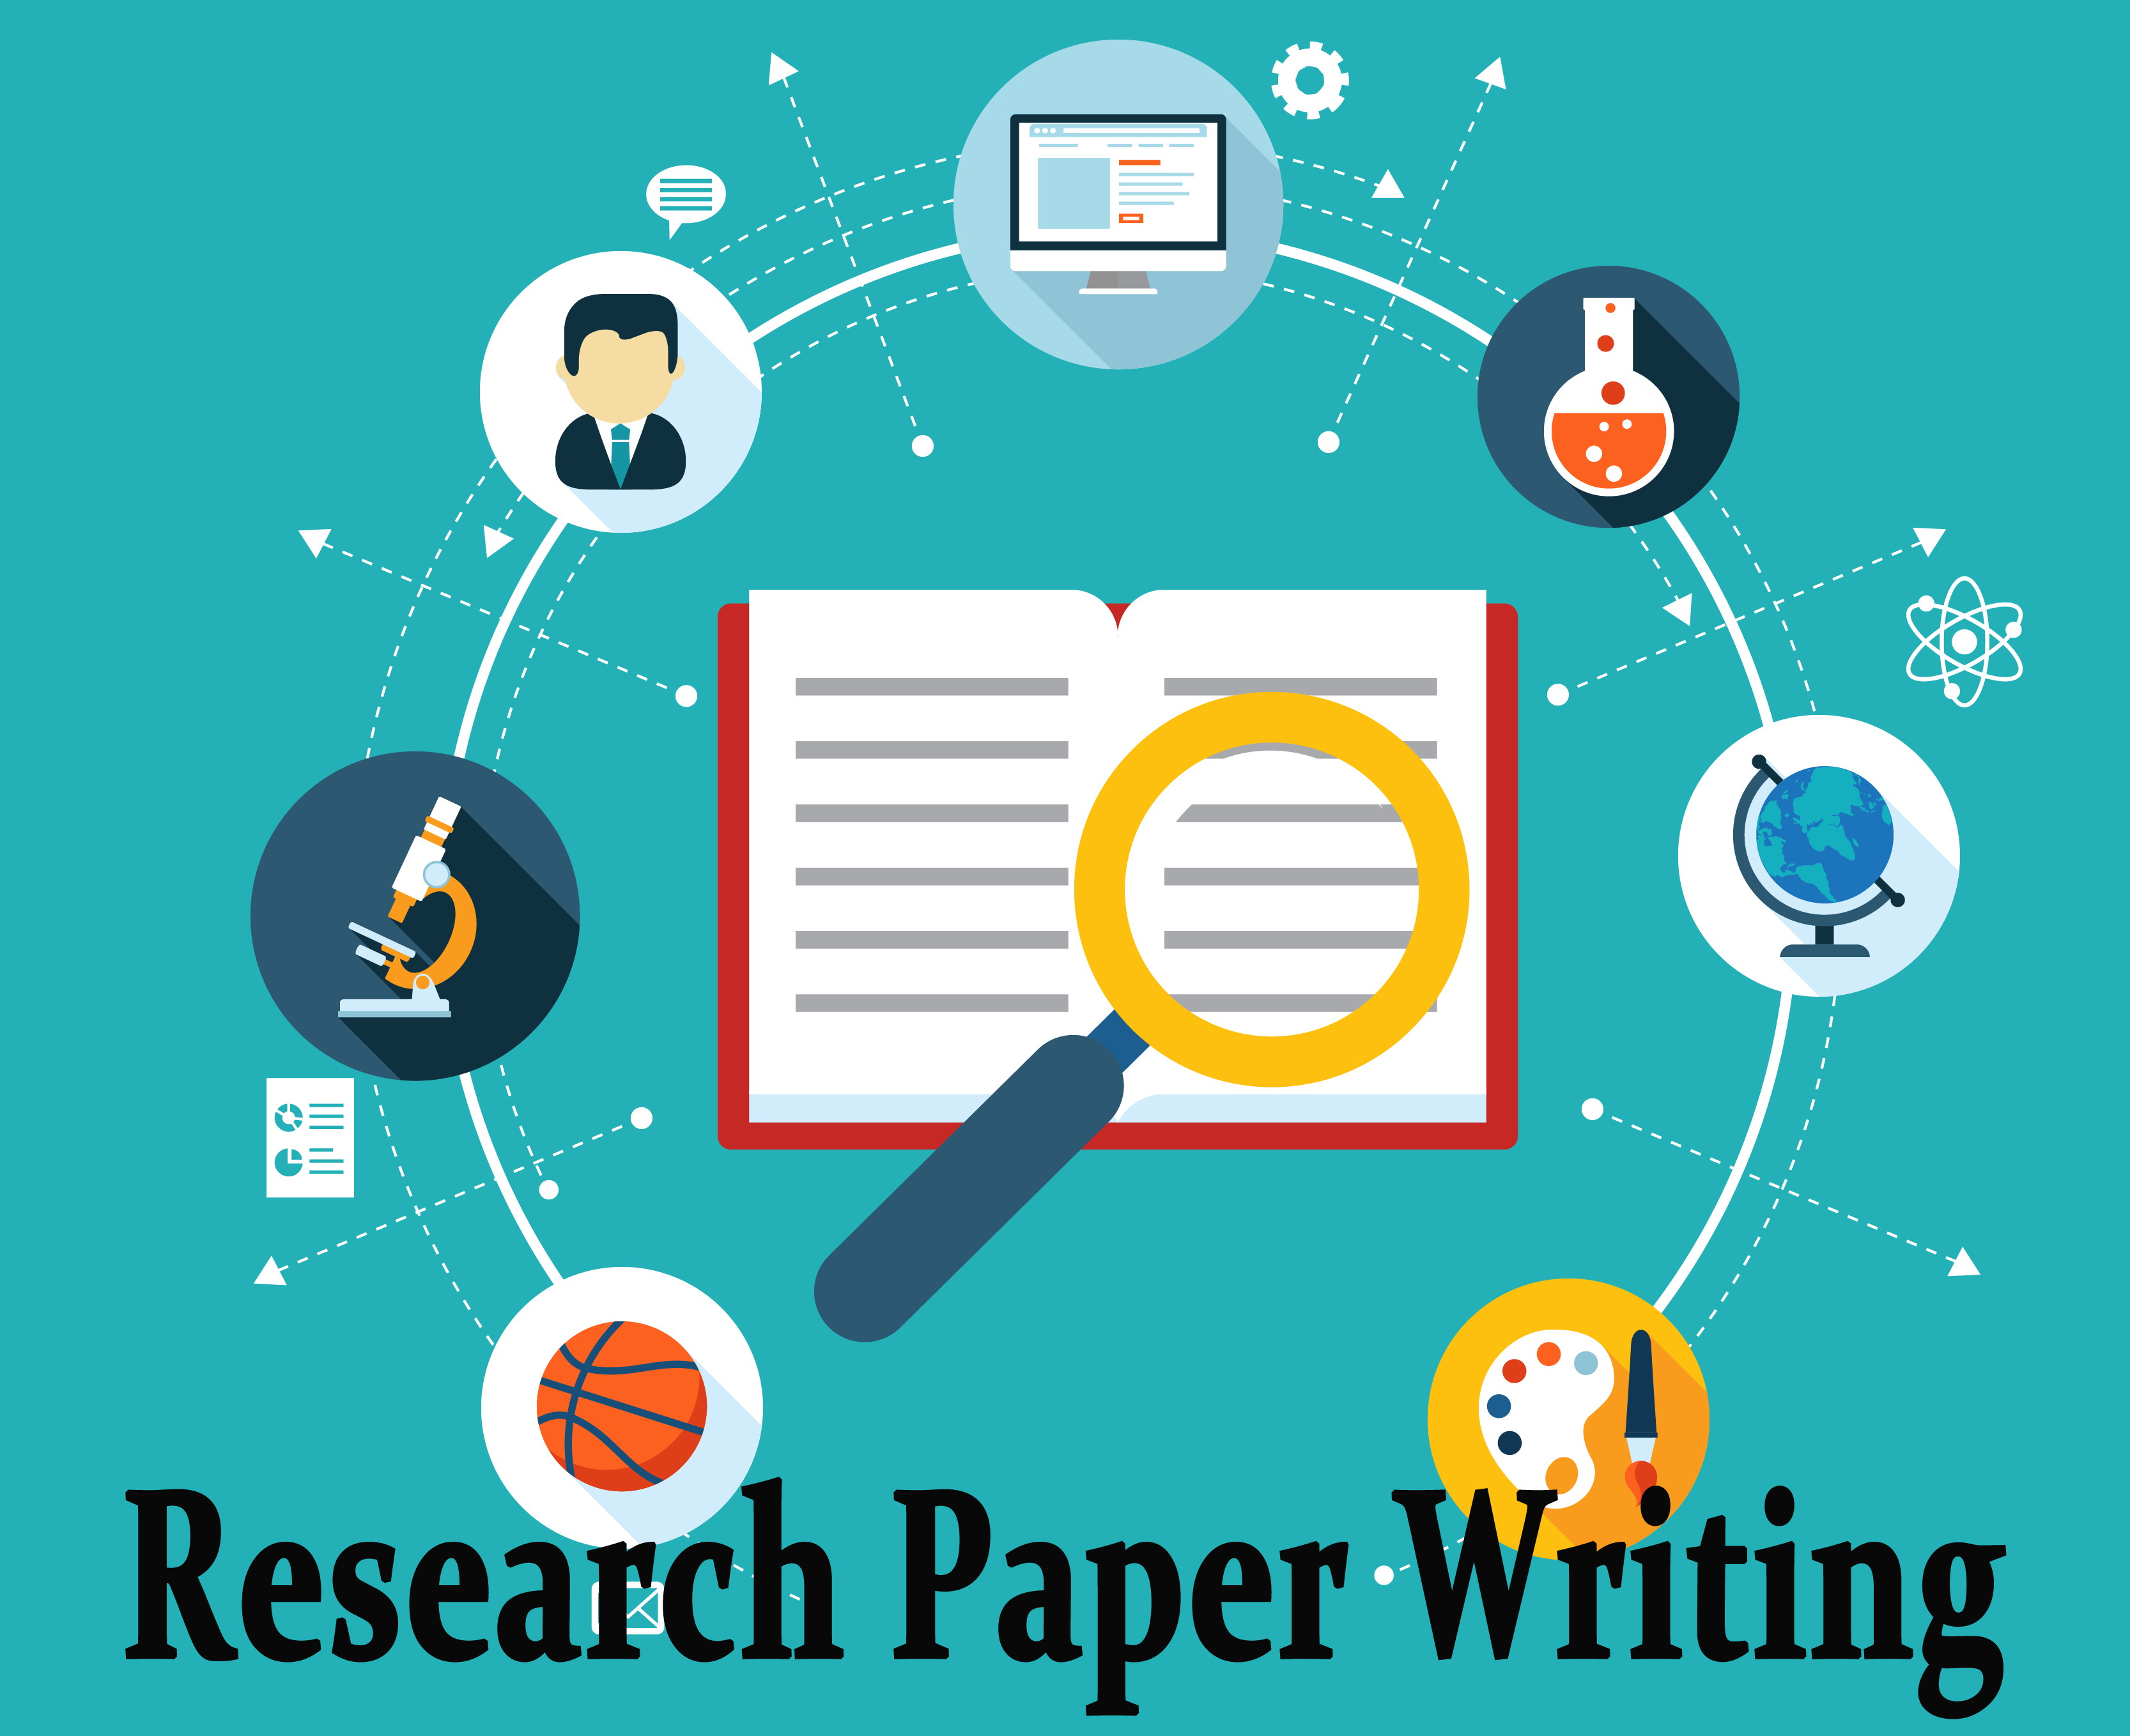 016 Research Paper 503 Effective Writing College Papers Stirring Written Full